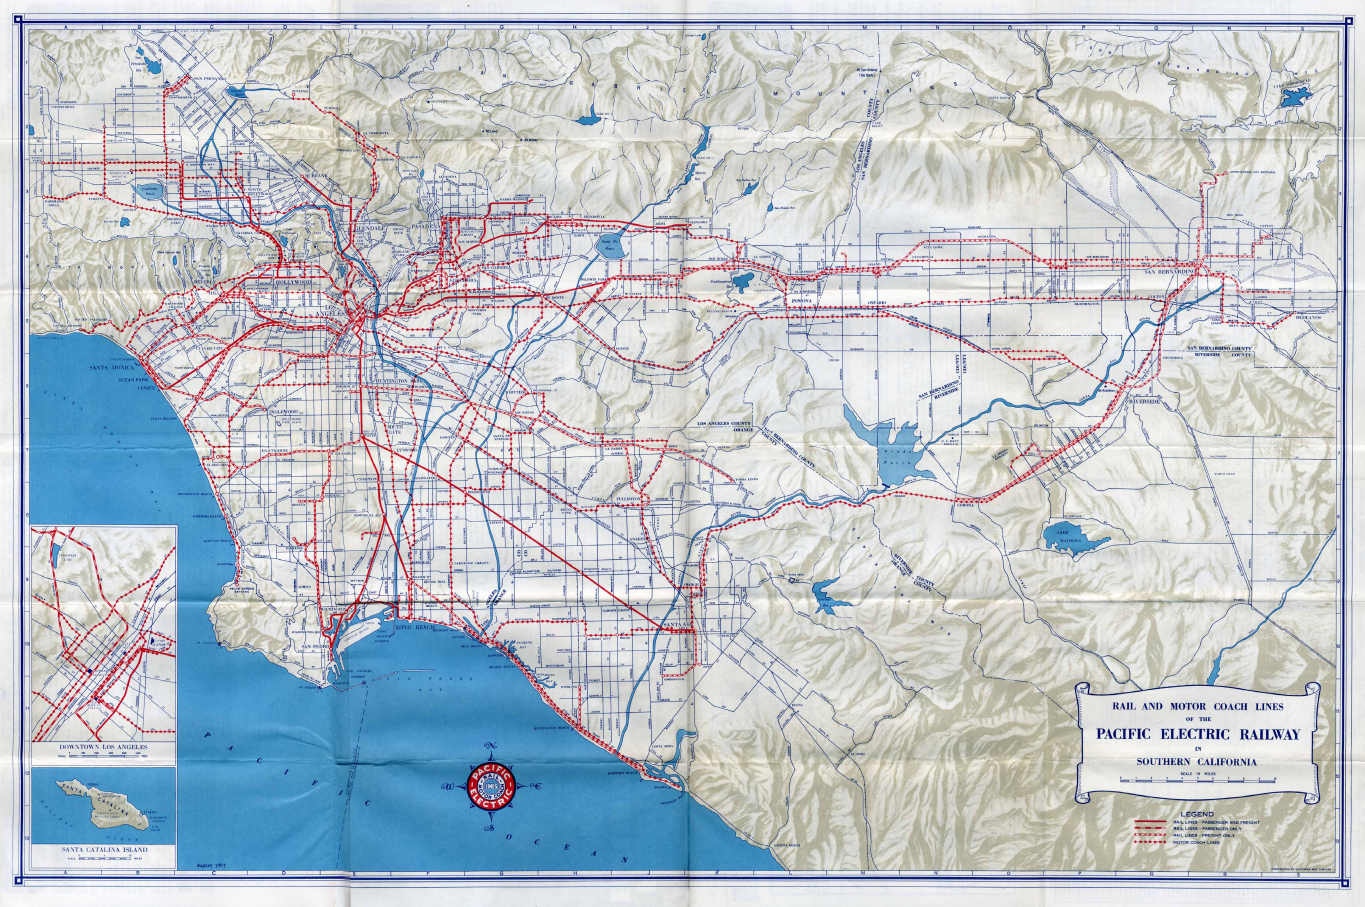 1947 Pacific Electric Railway route map | California | City ... on california interstate map and towns, california map with cities printable, california nevada map with cities, northern california map with cities, california state freeway map, map of california cities, california coast map with cities, california state map with cities, california county map with cities, california highway map,